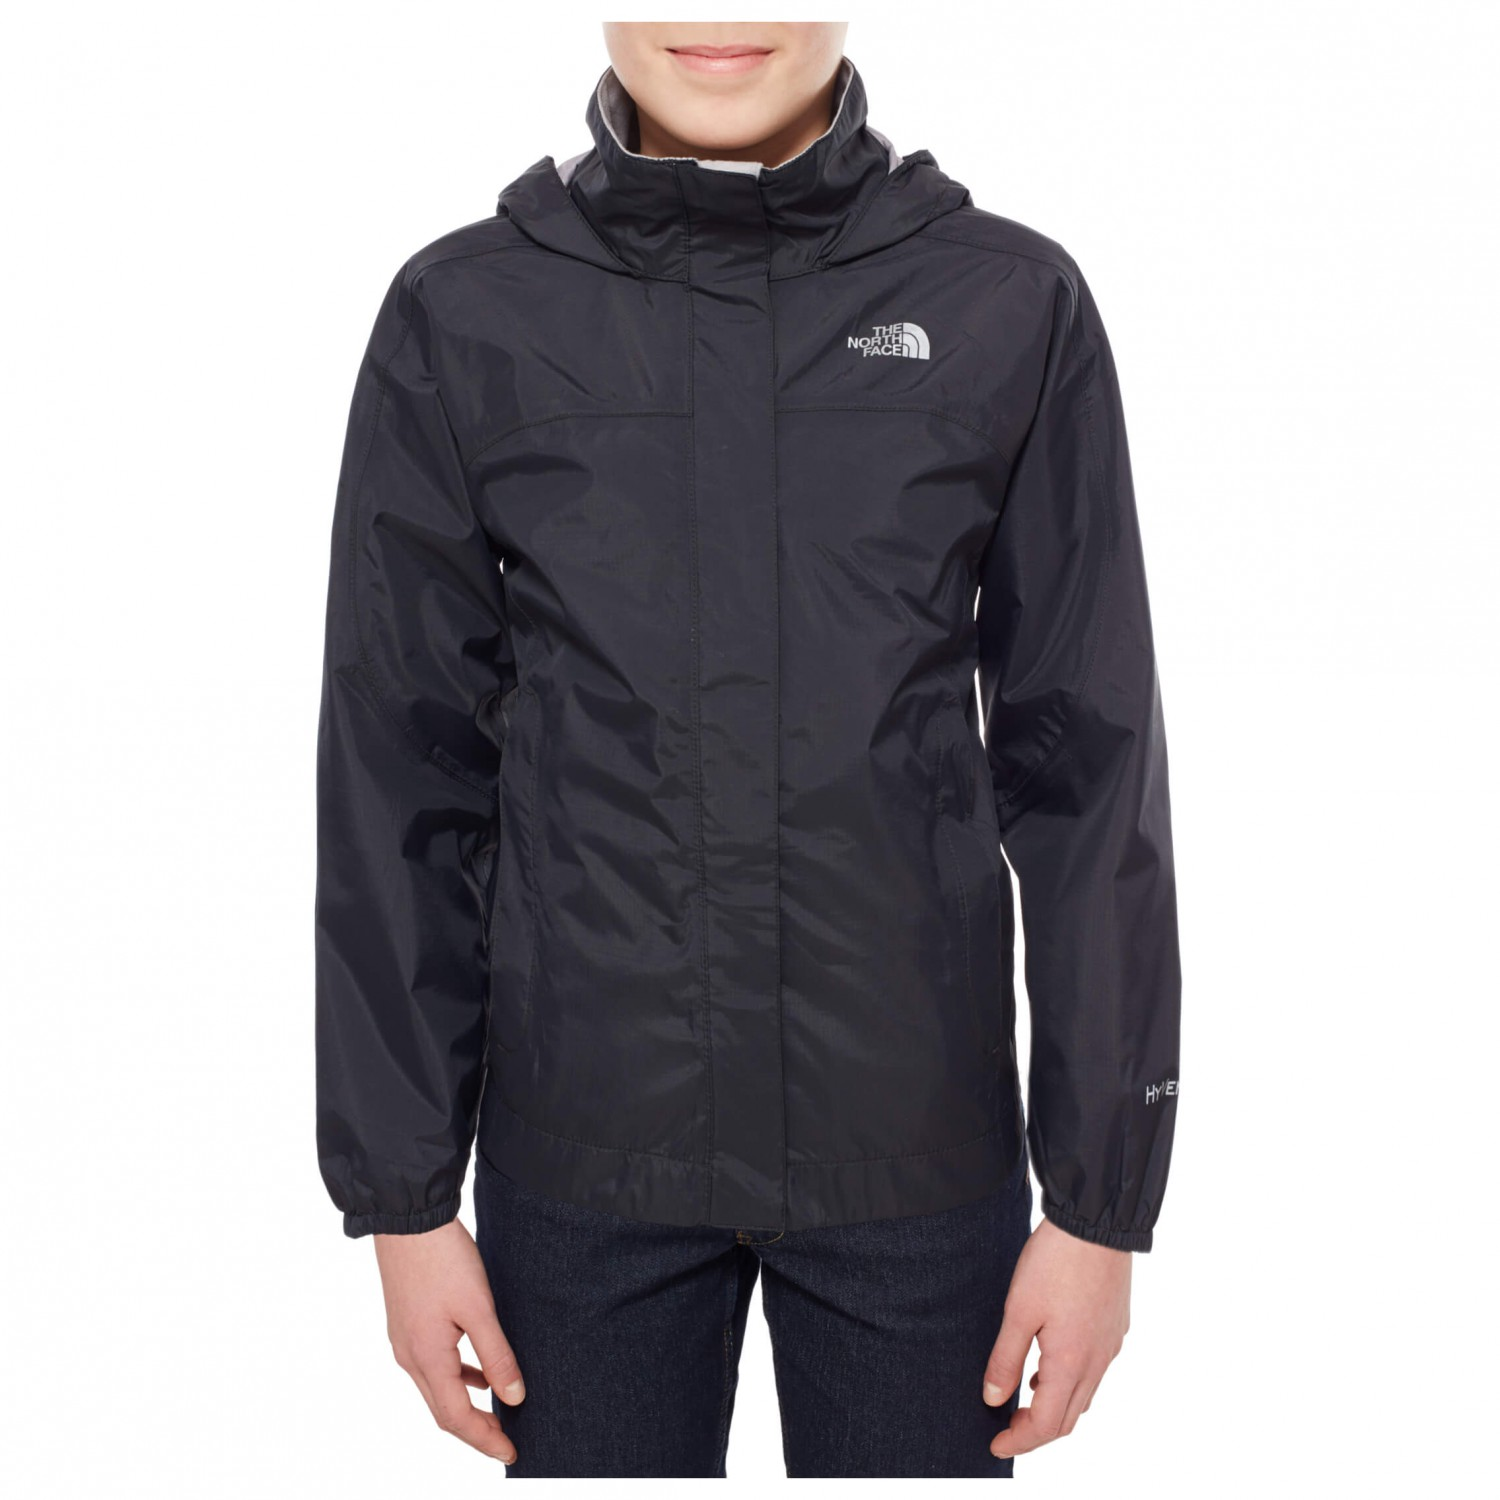 3c93a4474 ... The North Face - Girl's Resolve Reflective Jacket - Waterproof jacket  ...